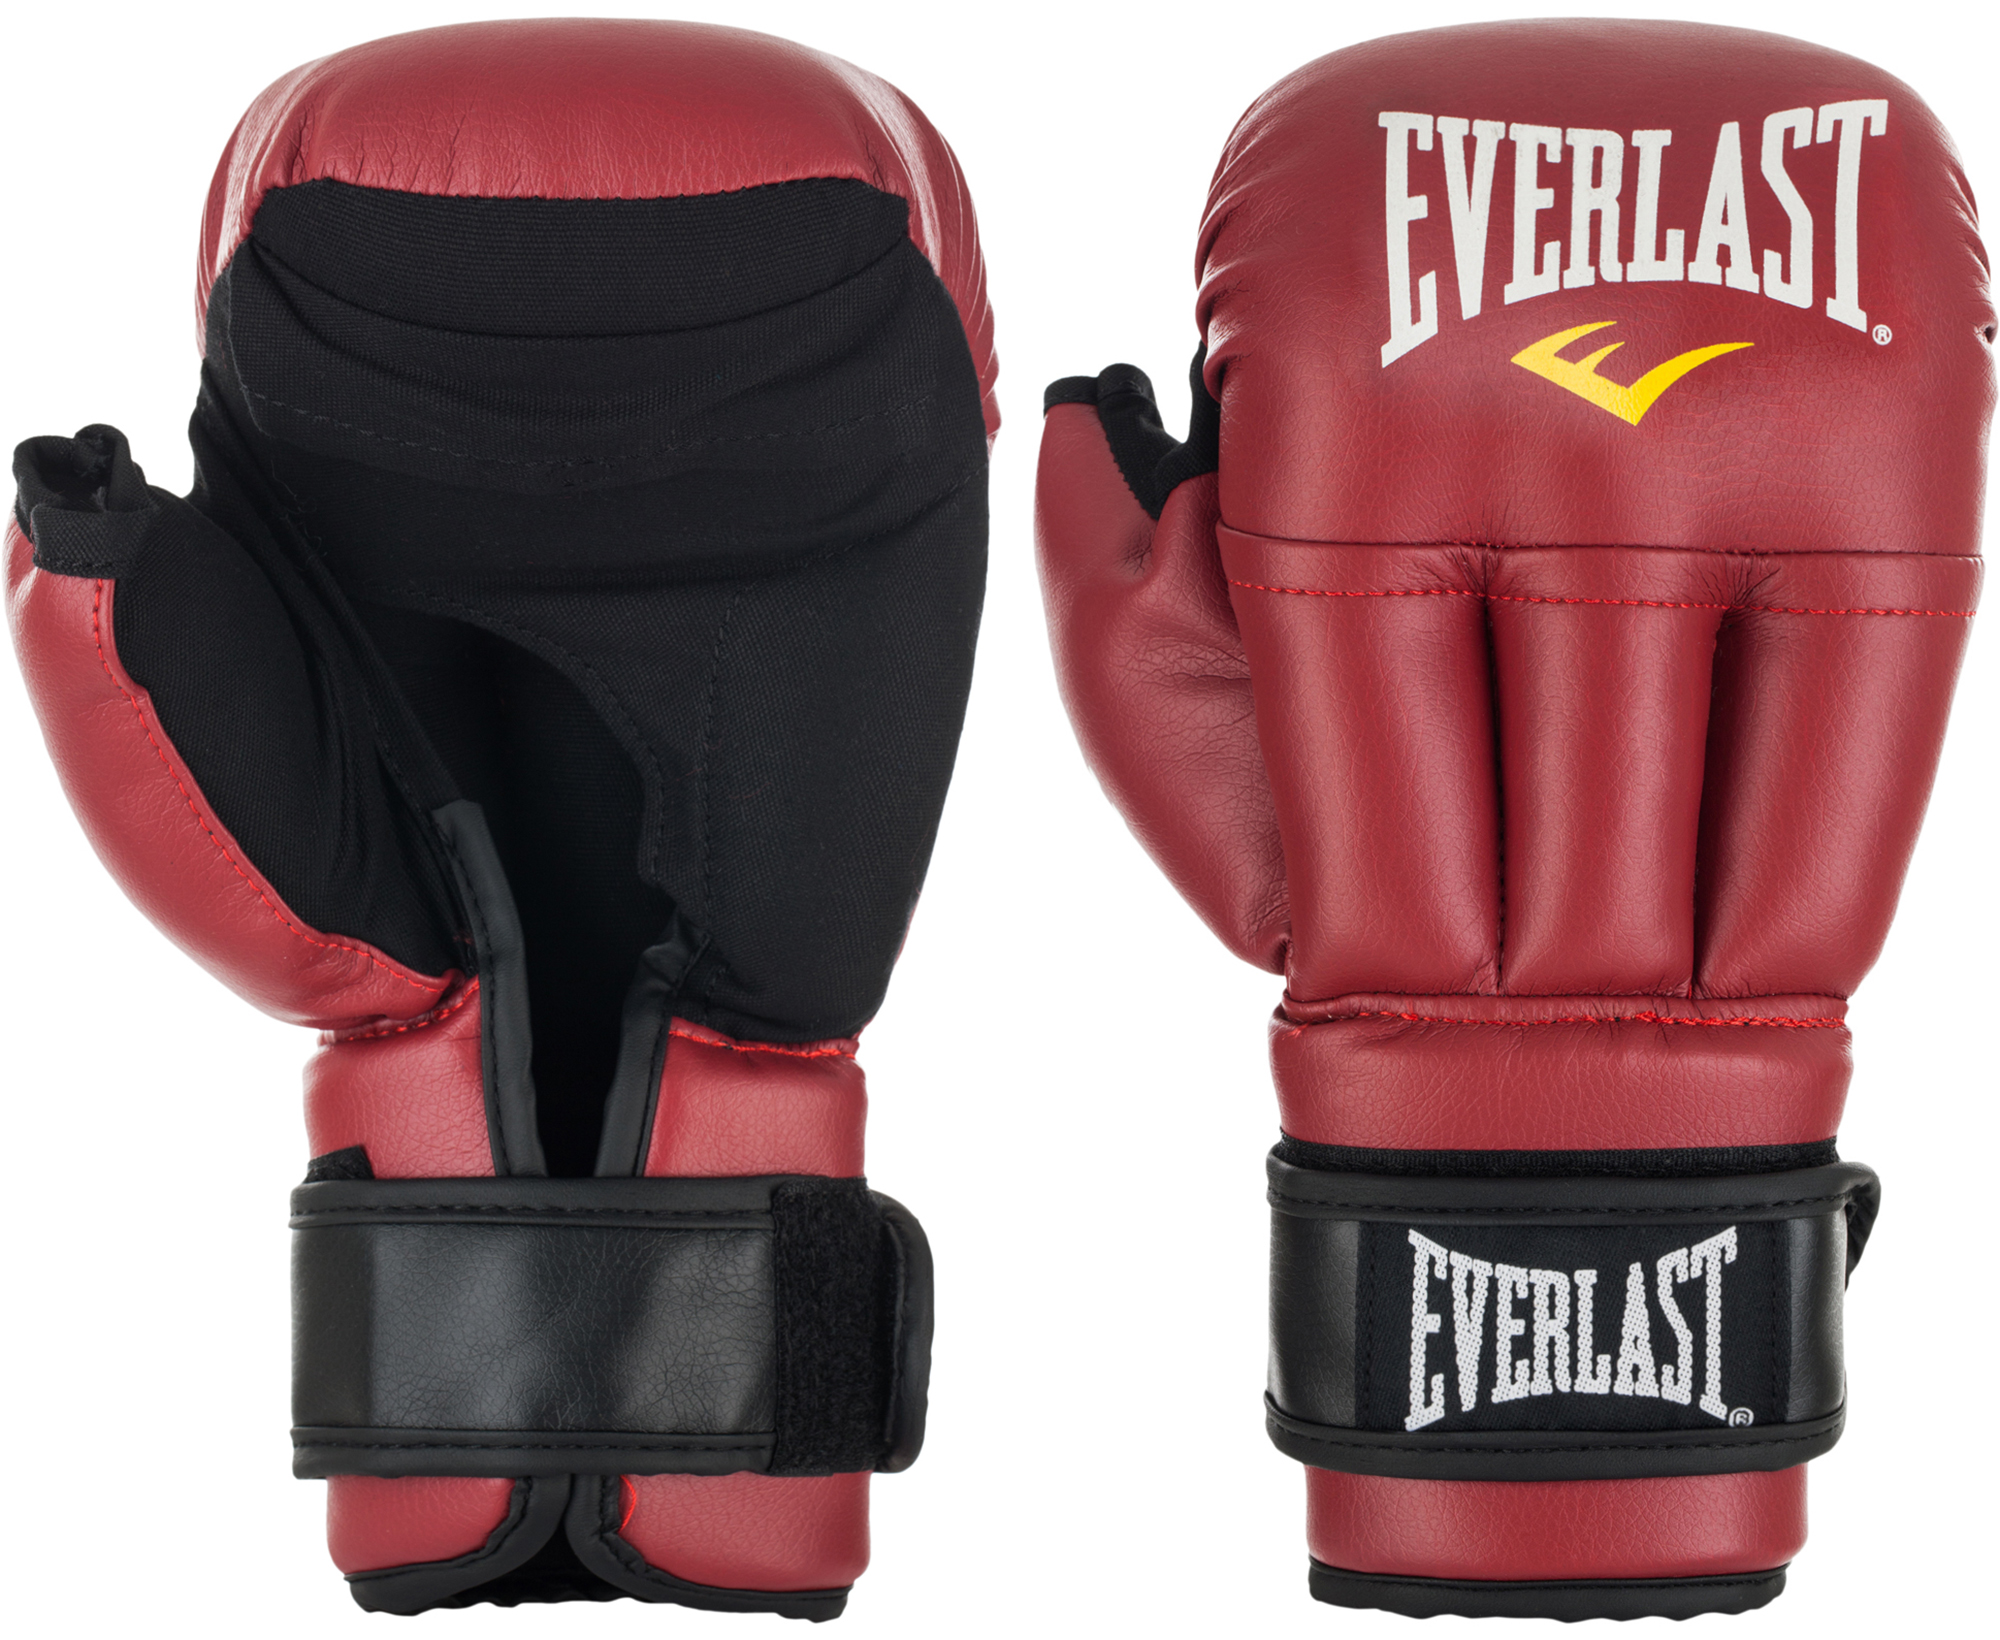 Everlast Перчатки для рукопашного боя Everlast, размер 12 oz free shipping avr r230 alternator copy internation brand suit for any brand